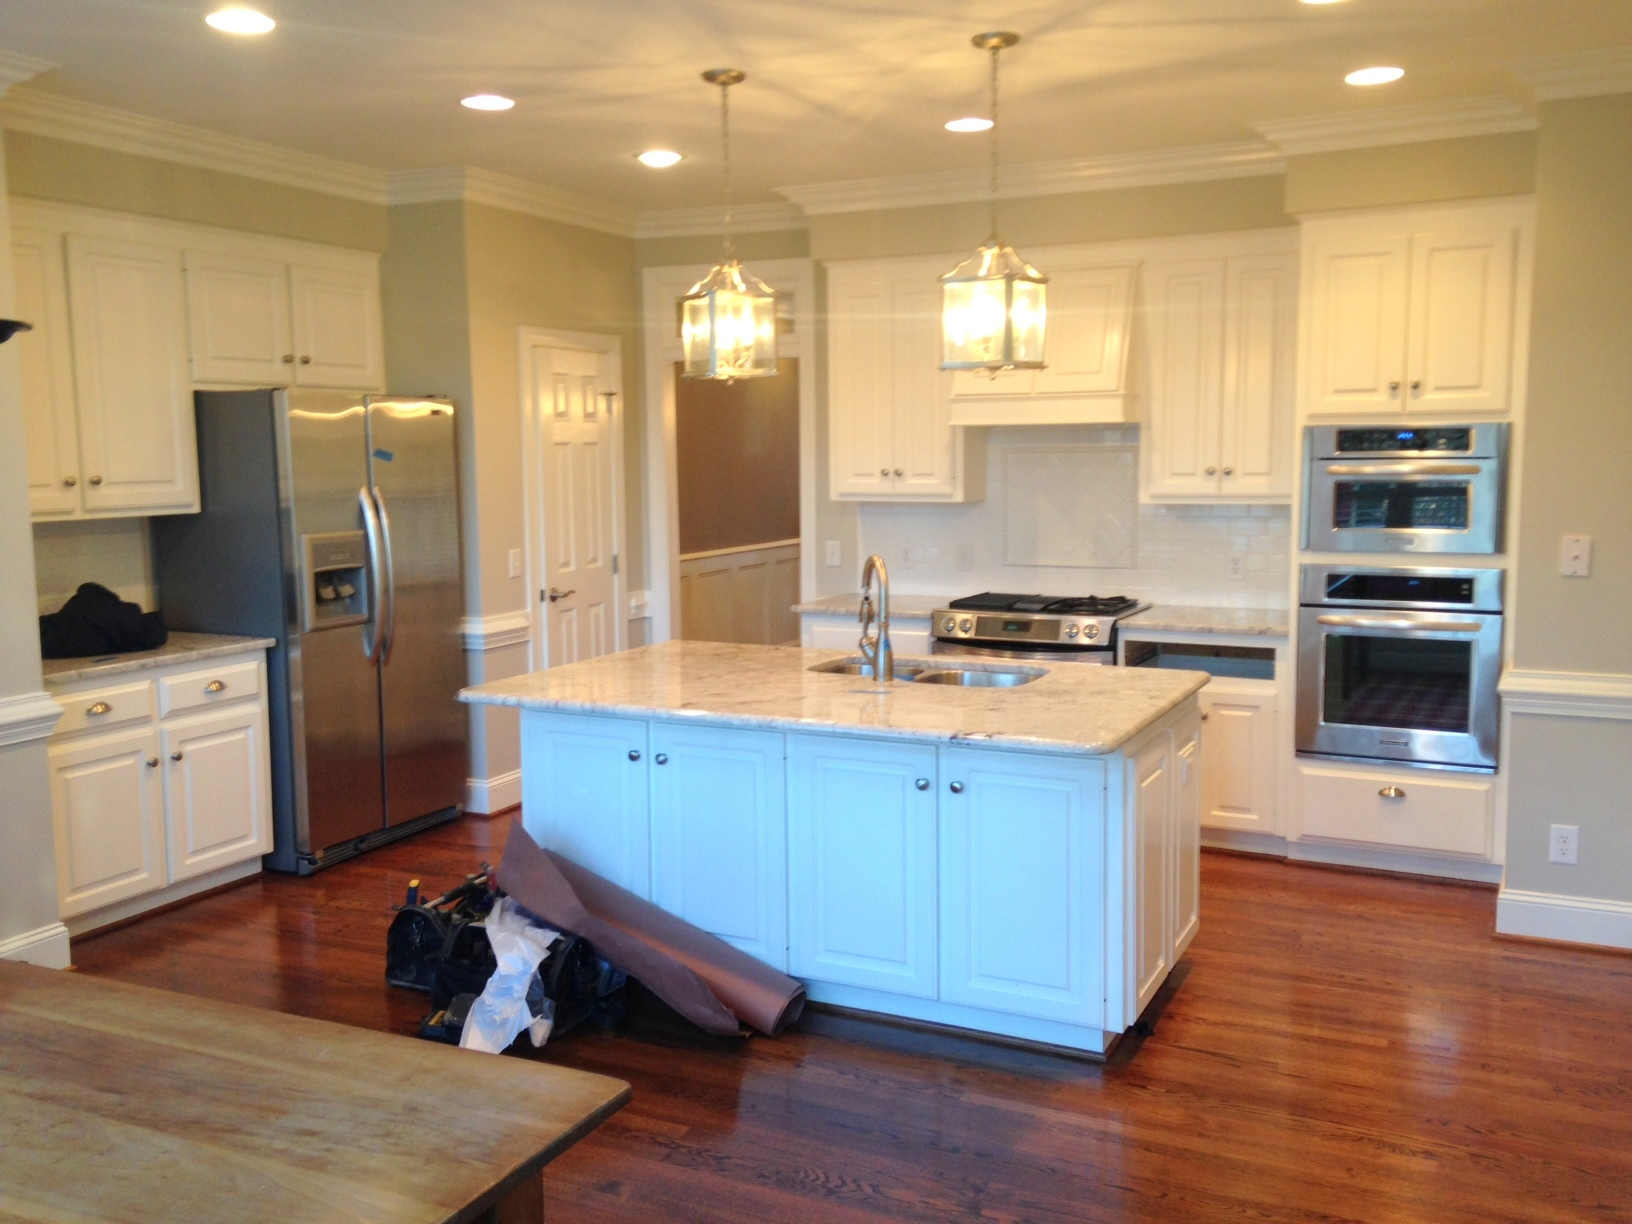 Kitchen Remodeling Pictures | TrendMark Inc